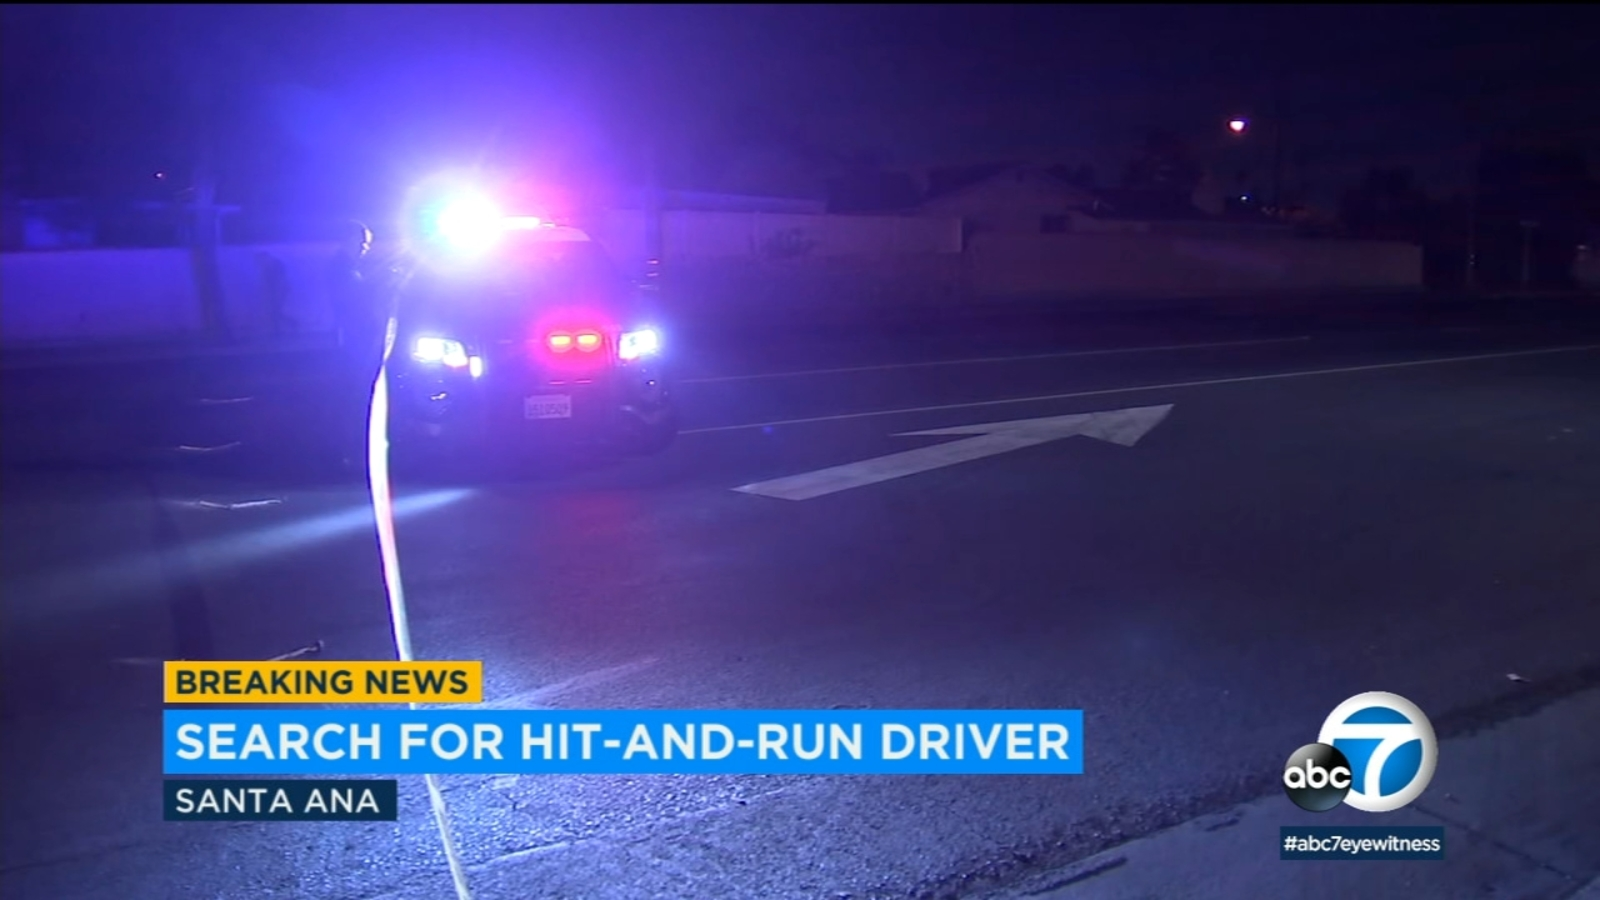 Woman struck by hit-and-run driver while walking with husband in Santa Ana, police say